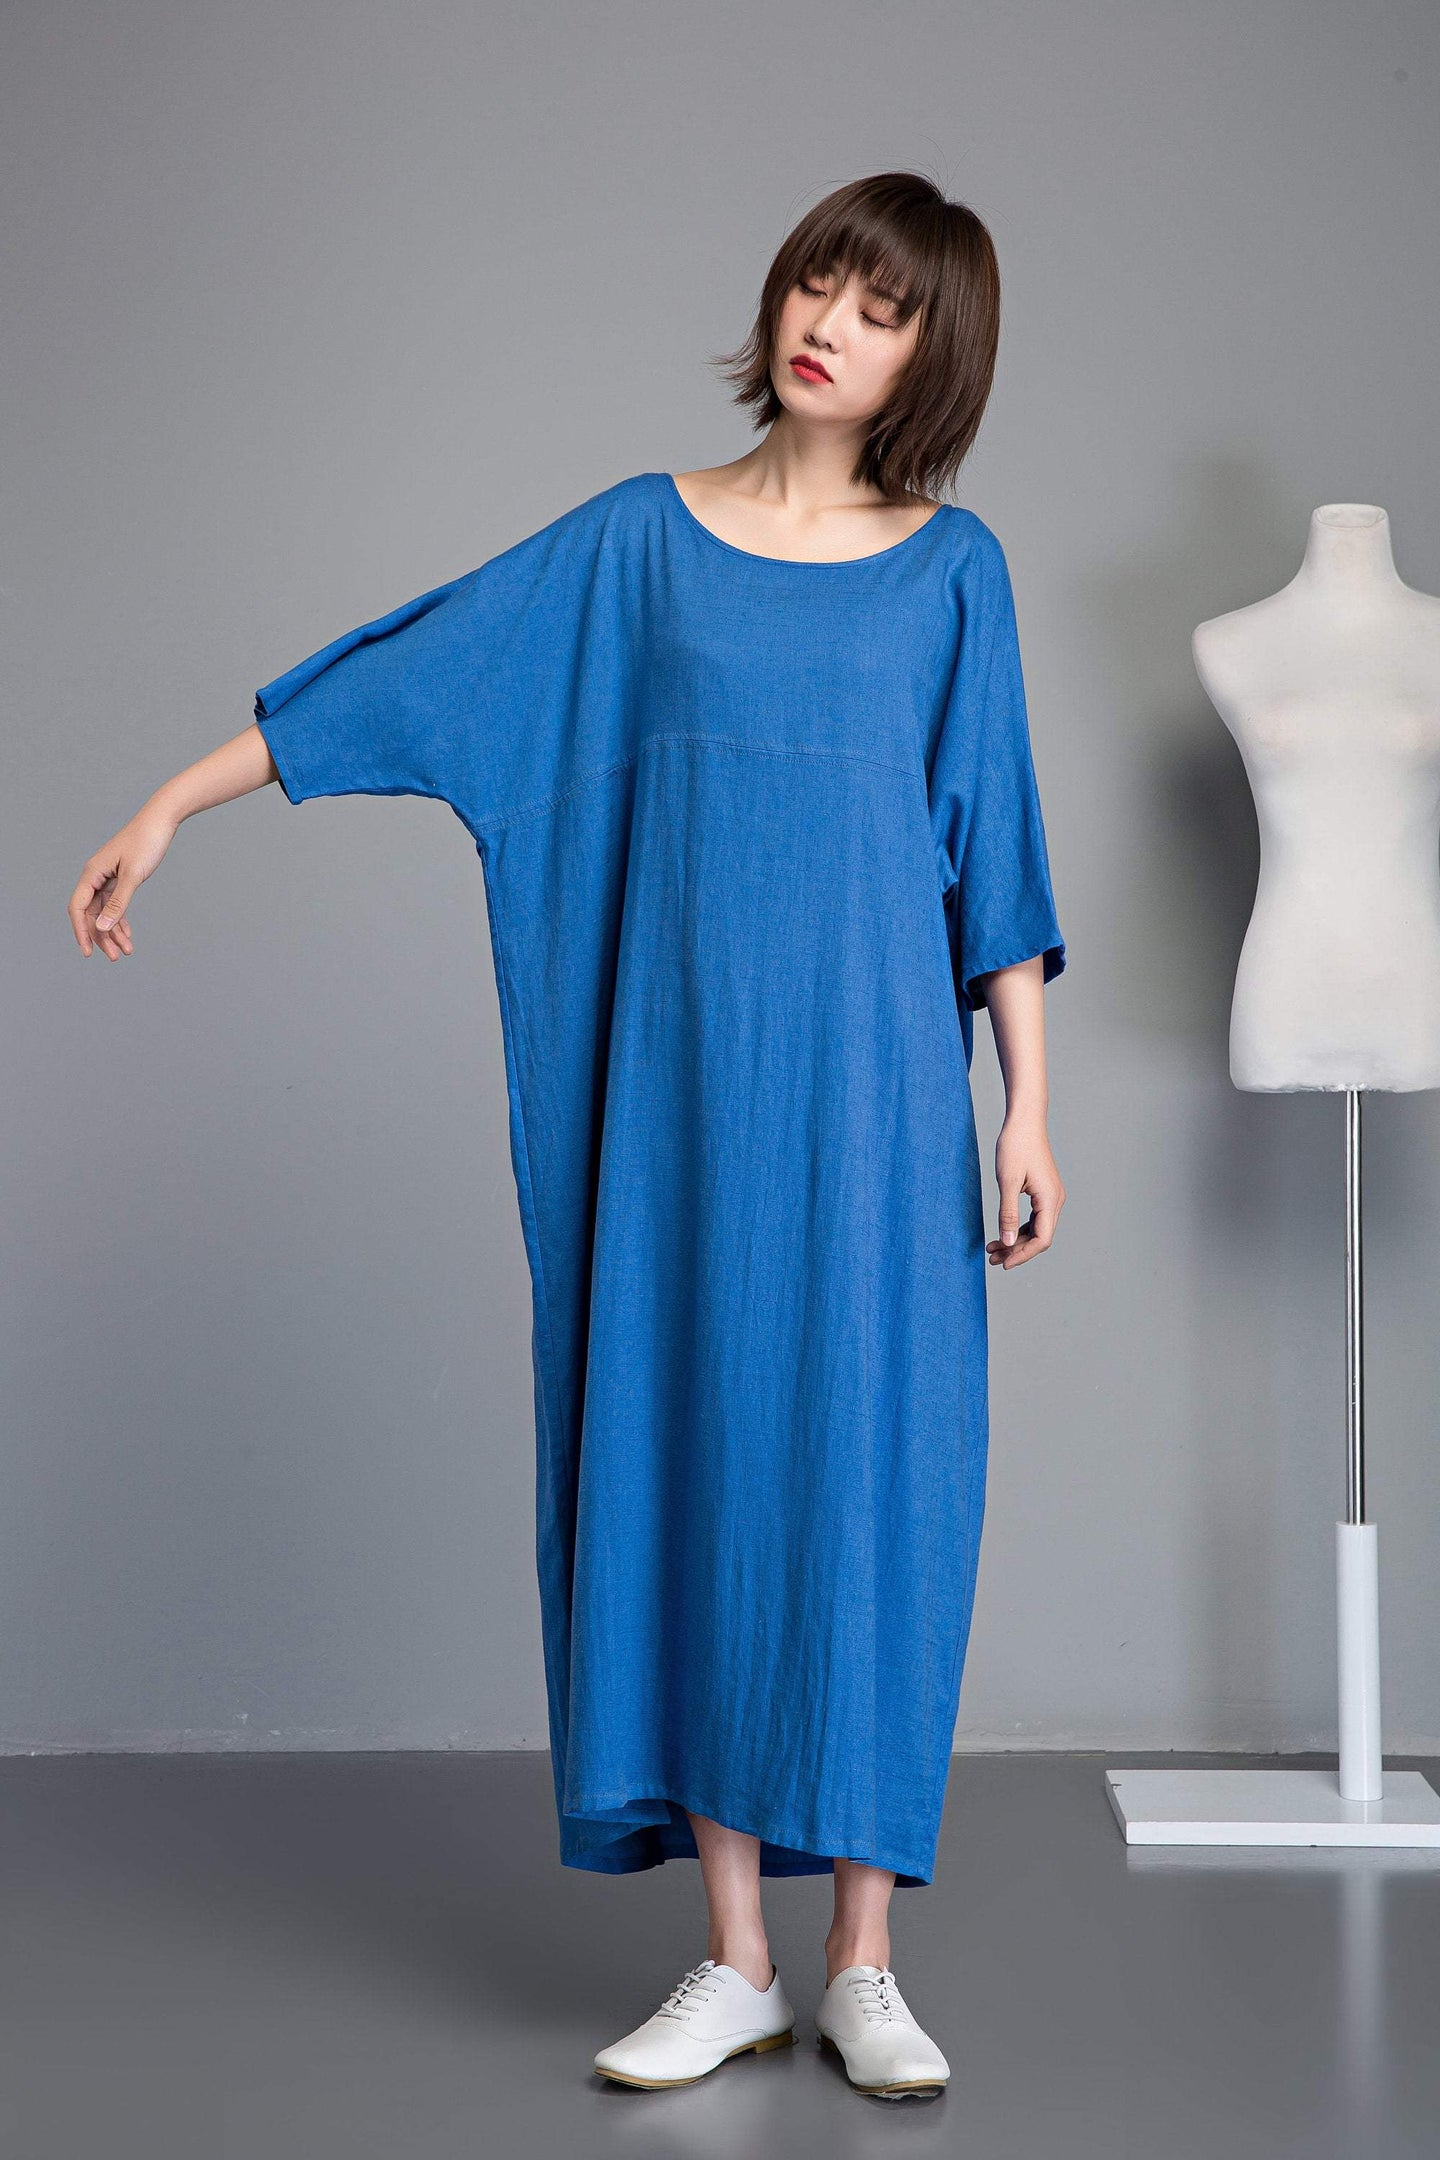 Blue linen dress, Plus size linen dress, linen dress, long sleeve dress, long linen dress, loose linen dress, summer linen dress  C1236